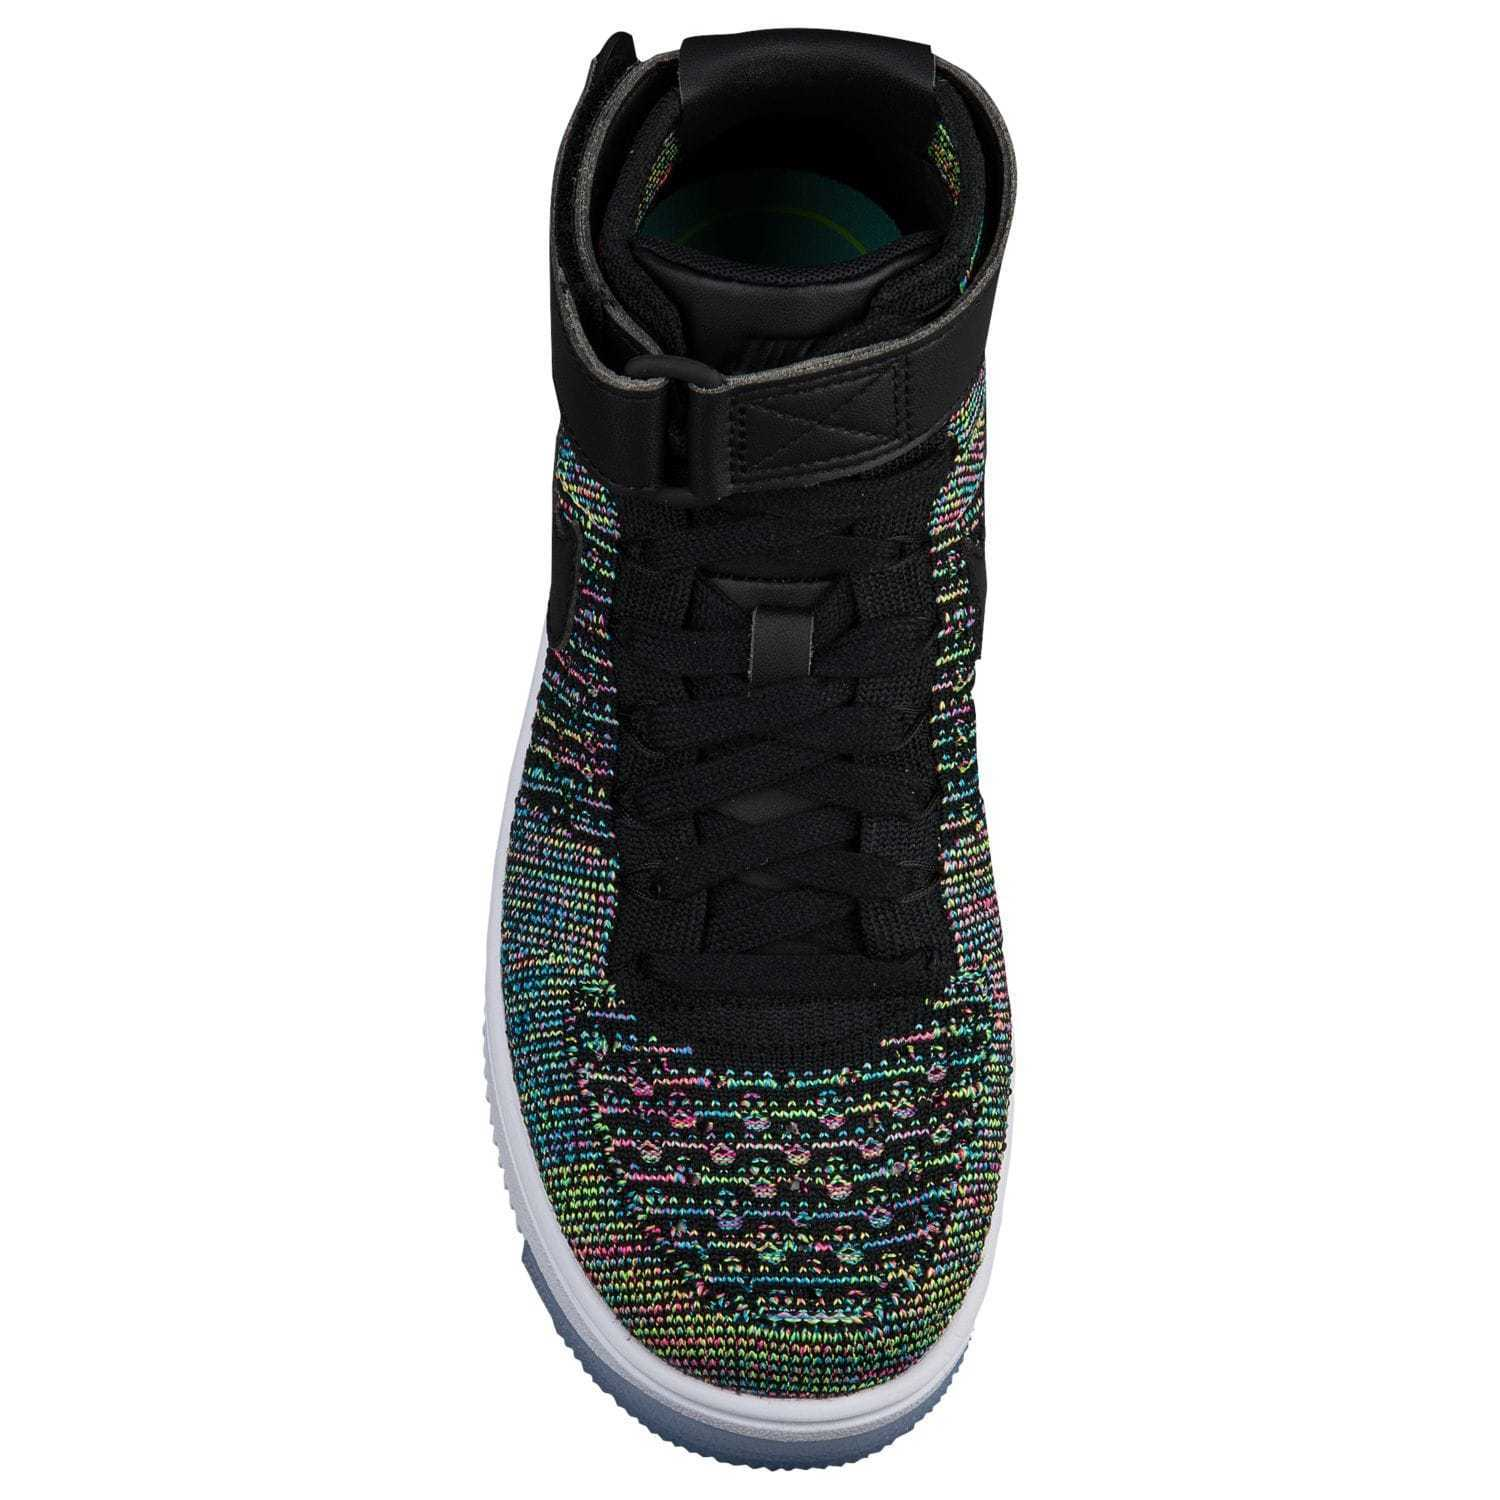 FW17 NIKE AIR FORCE 1 MID FLYKNIT GS 22.5-27.5cm 送料無料